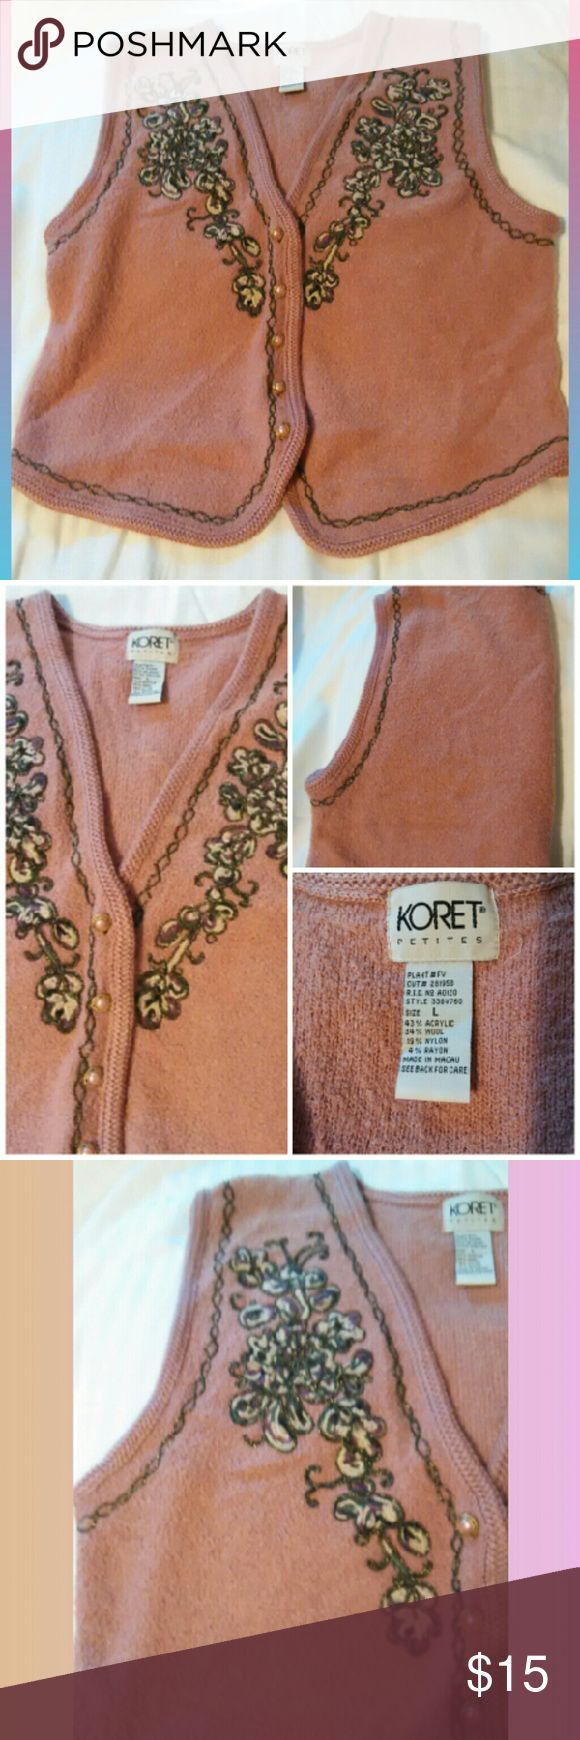 Koret plush embellished vest~sz.Lg rose buttons Really soft and cozy women's plush sweater vest. Very pretty for holidays and a warm layering piece for your wardrobe. Rose pearl buttons. In excellent condition Rose/Salmon color Women's Large Koret Sweaters Cardigans